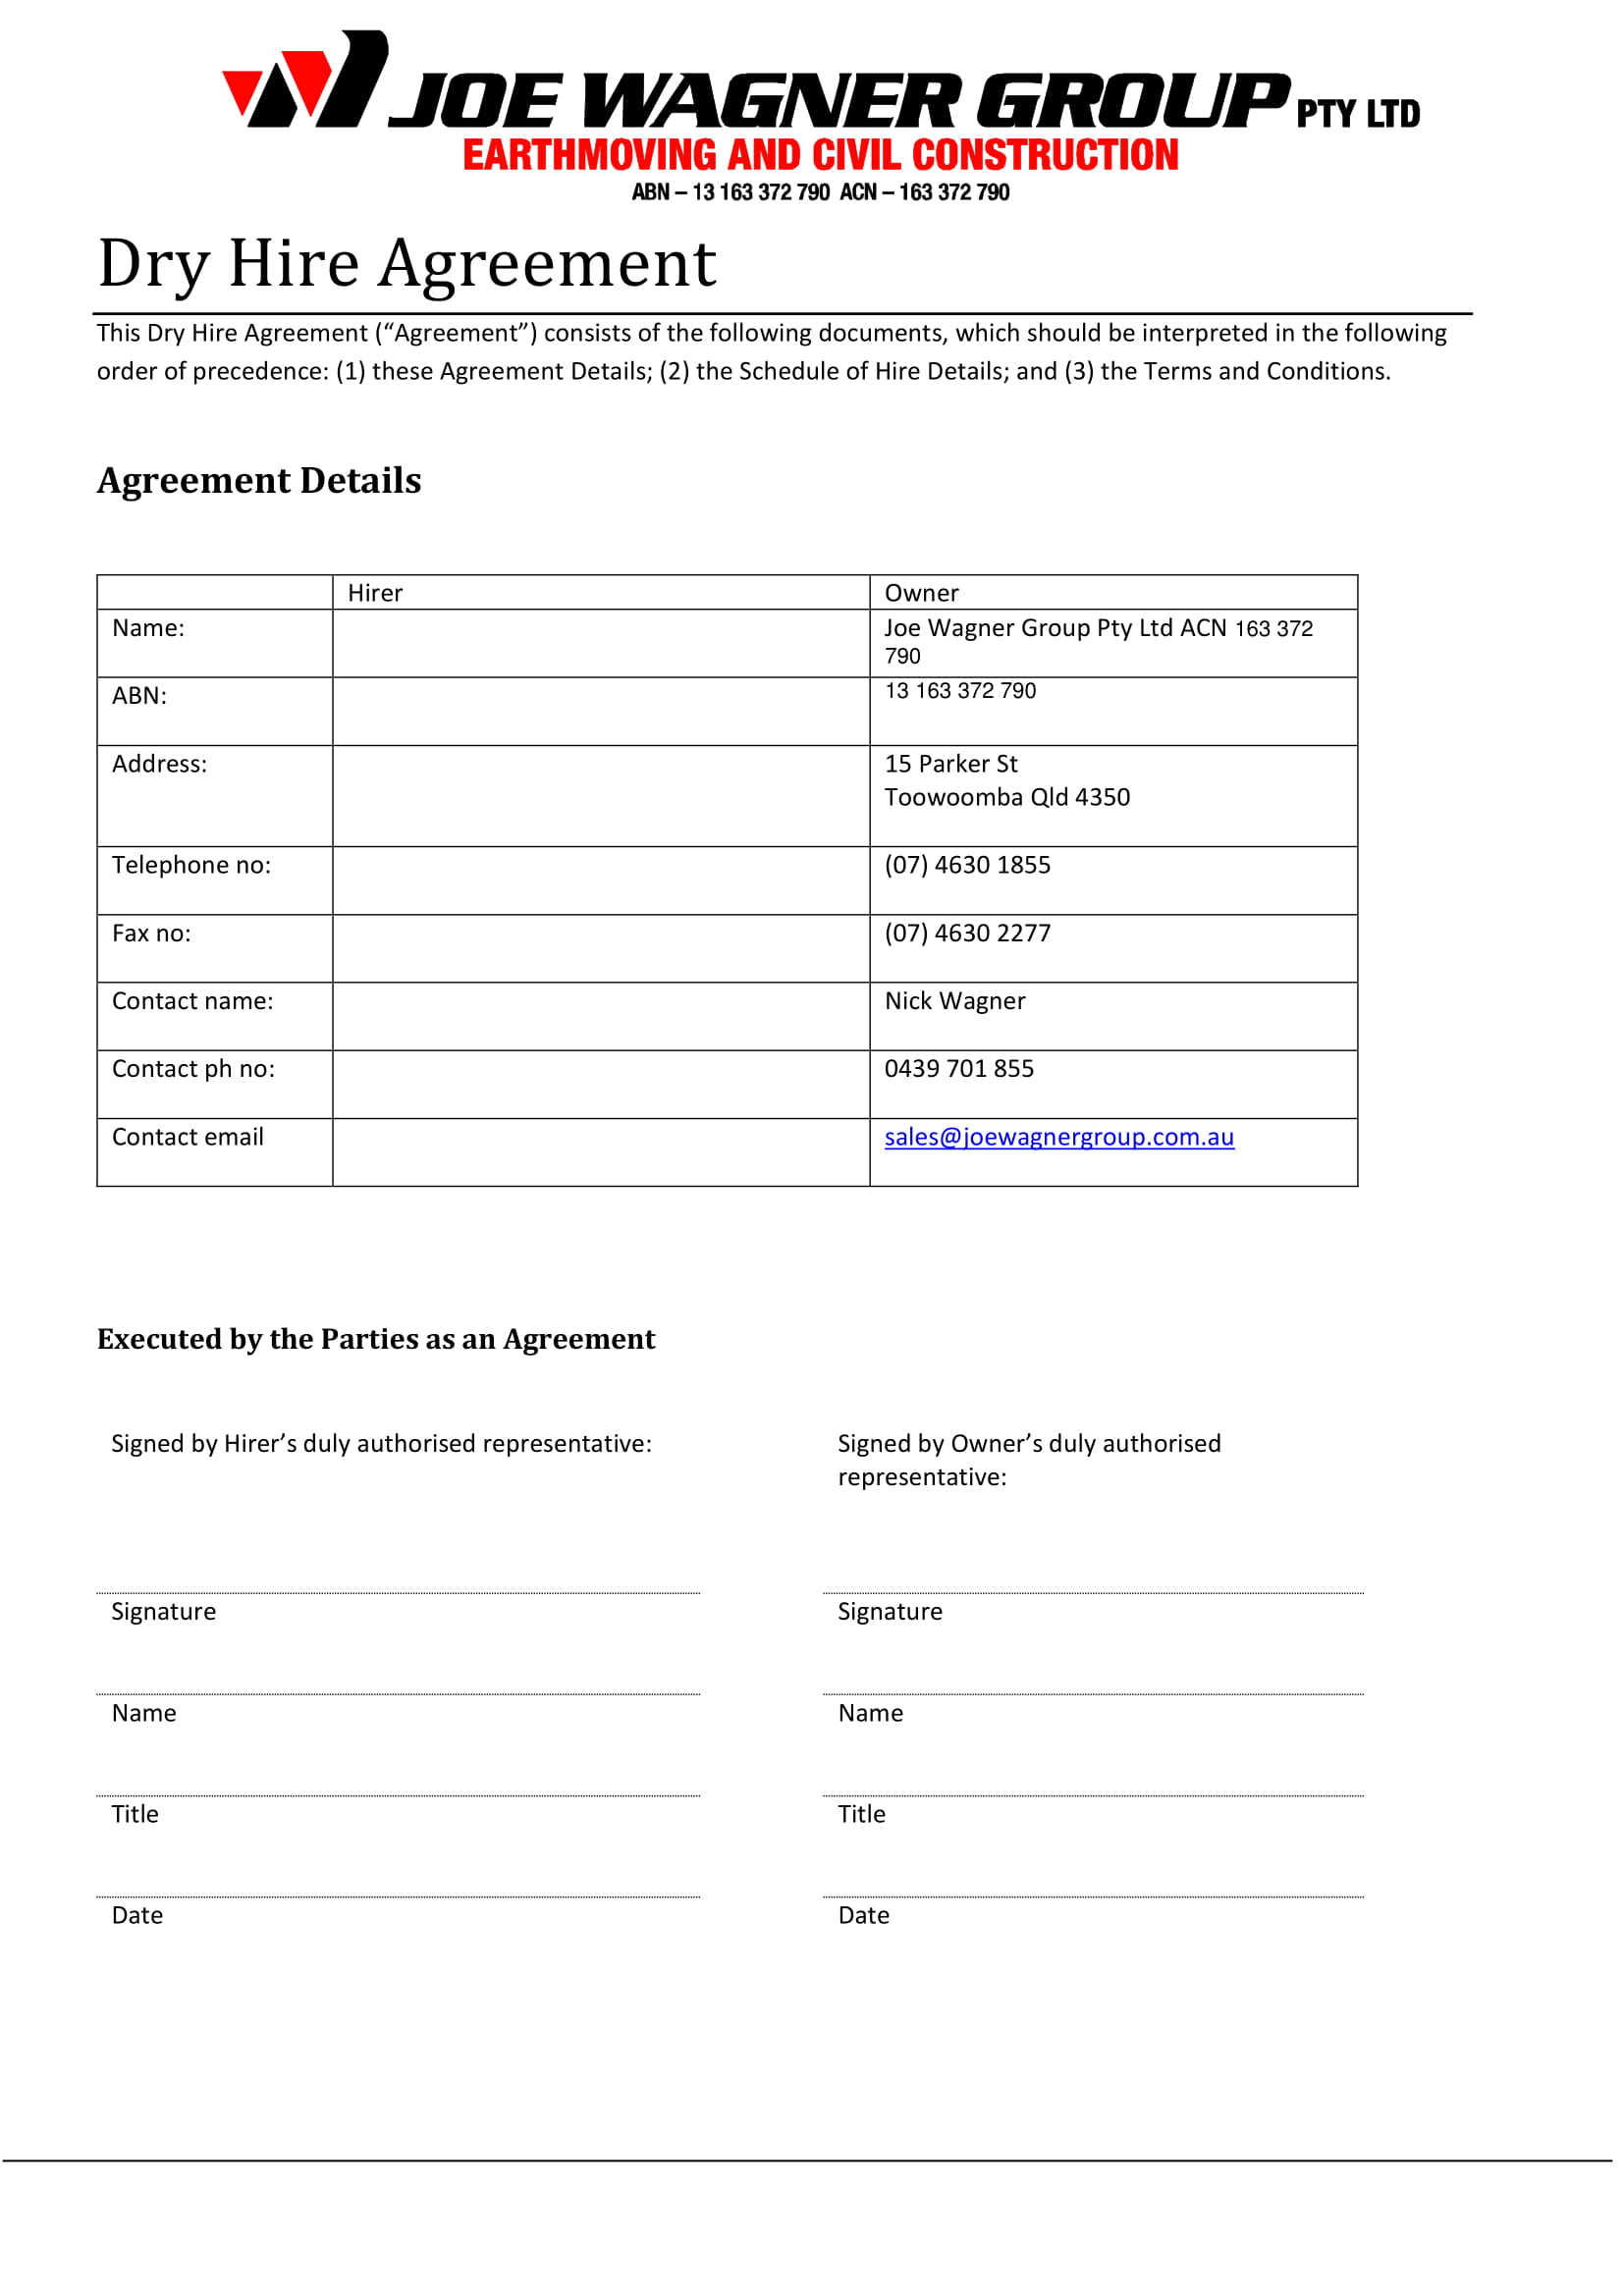 dry hire agreement contract form 1